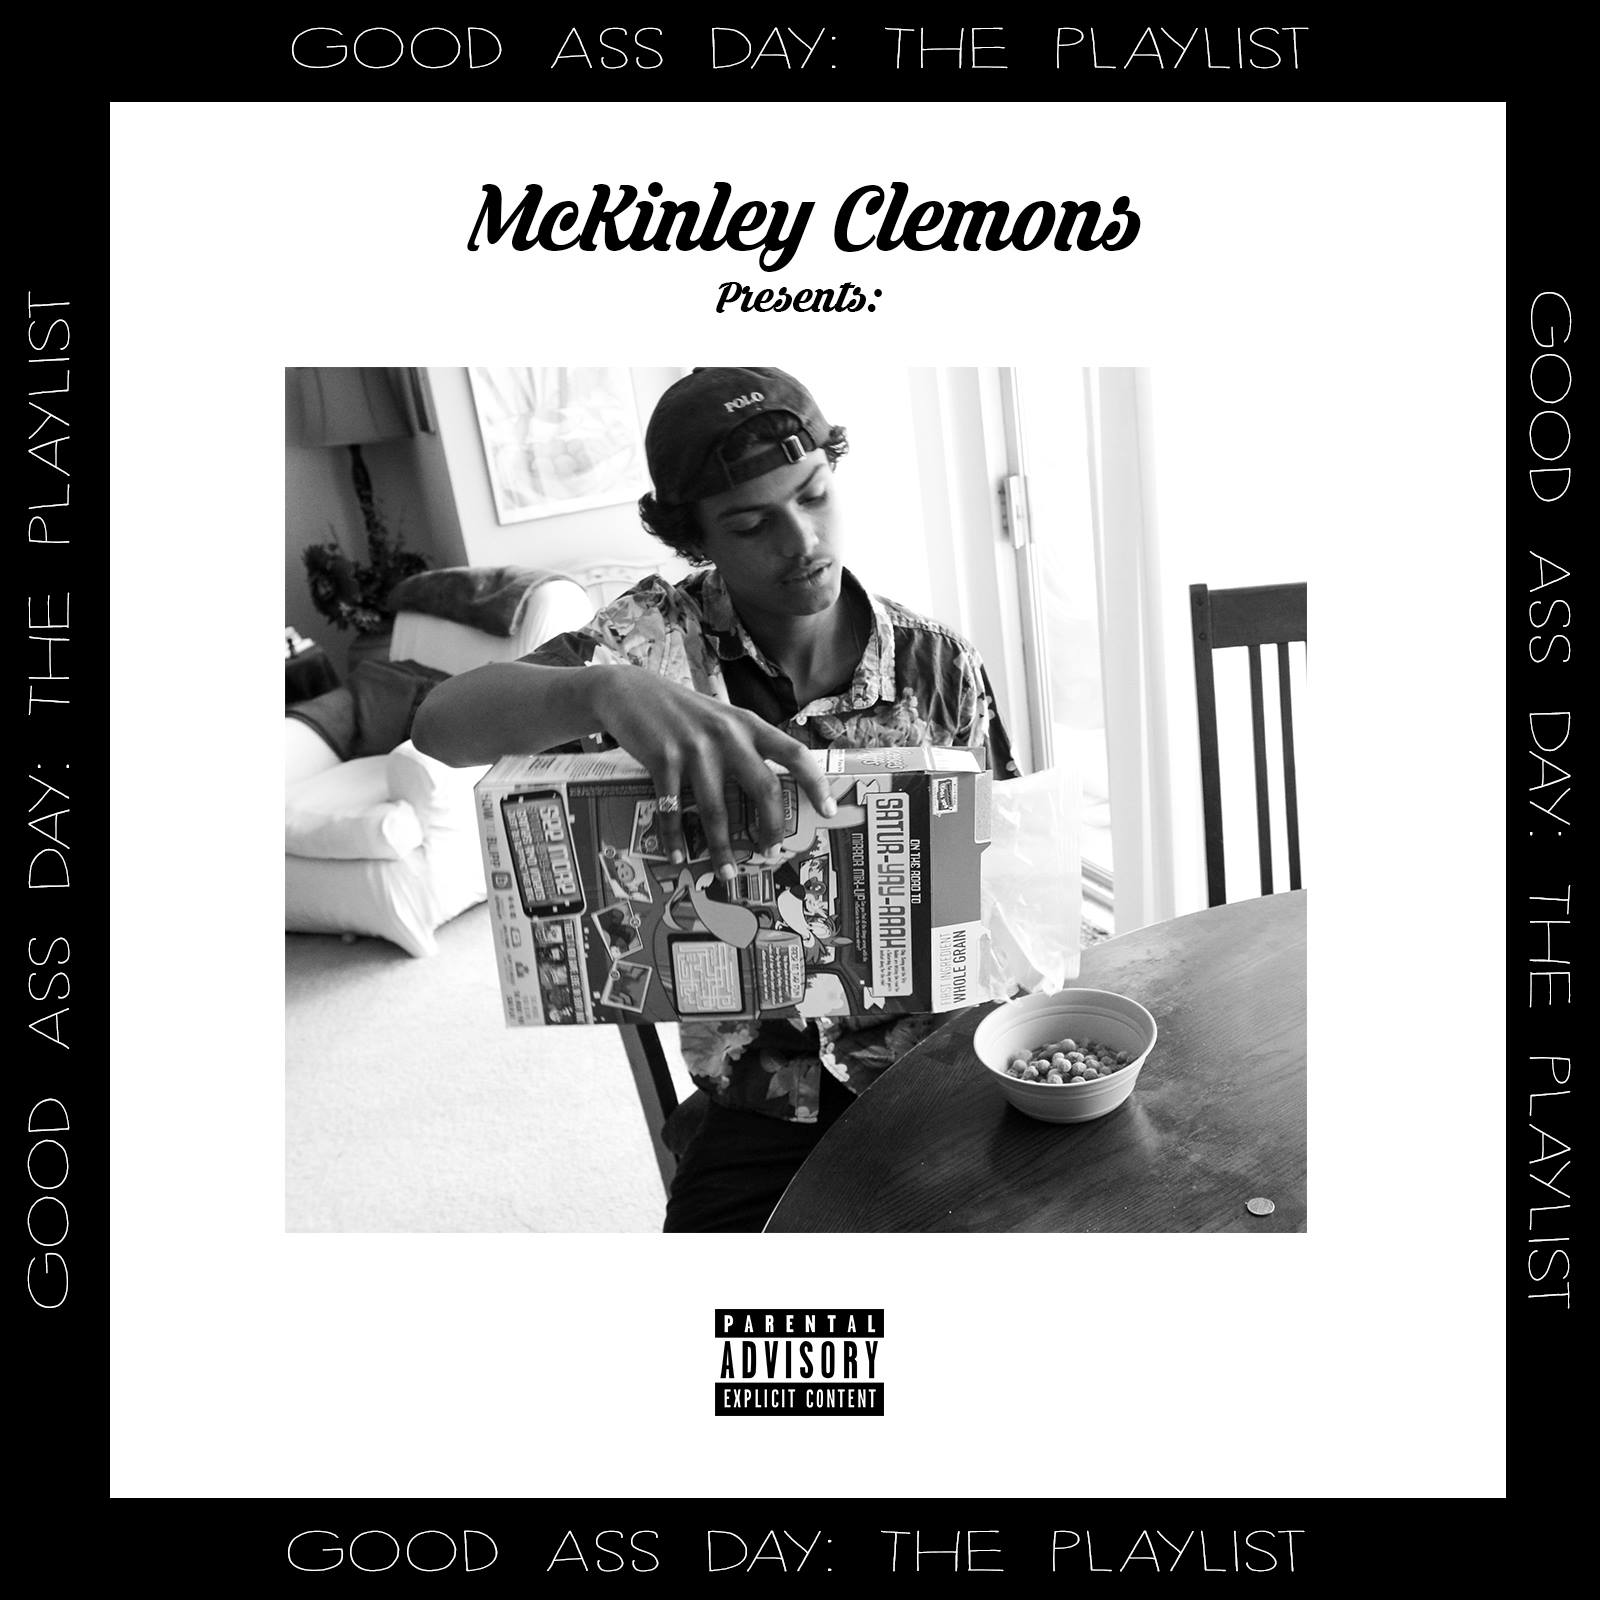 Good Ass Day - Good Ass Day was released in the summer of 2017 by Willie Mac who at the time went by the name of McKinley Clemons. MIKE Beats produced the entire tape and came up with the business strategy of releasing a new song from the project every Friday for 10 weeks. The slogan for the project soon became,